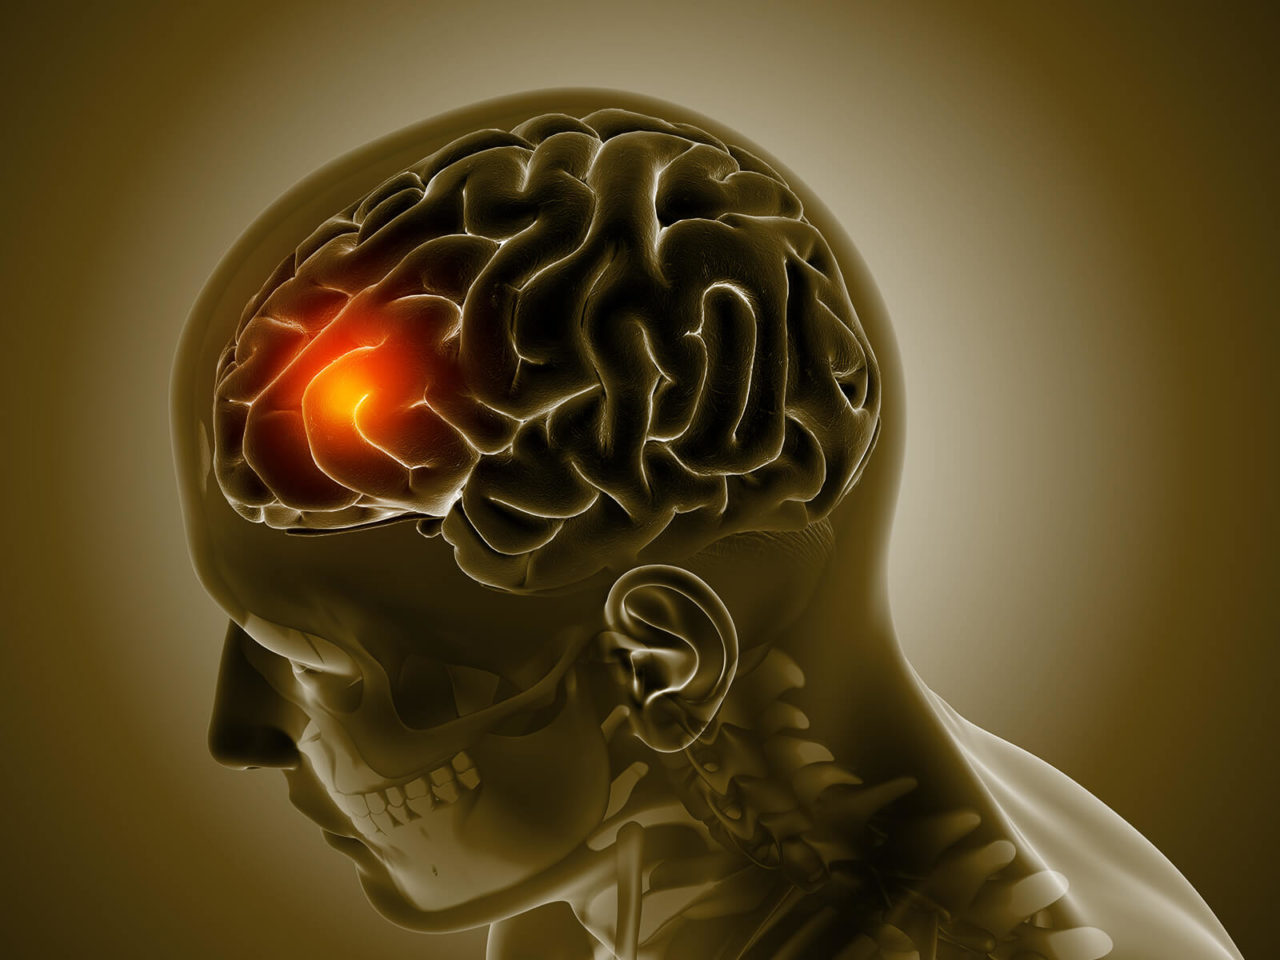 Early brain cancer detection breakthrough for Dxcover